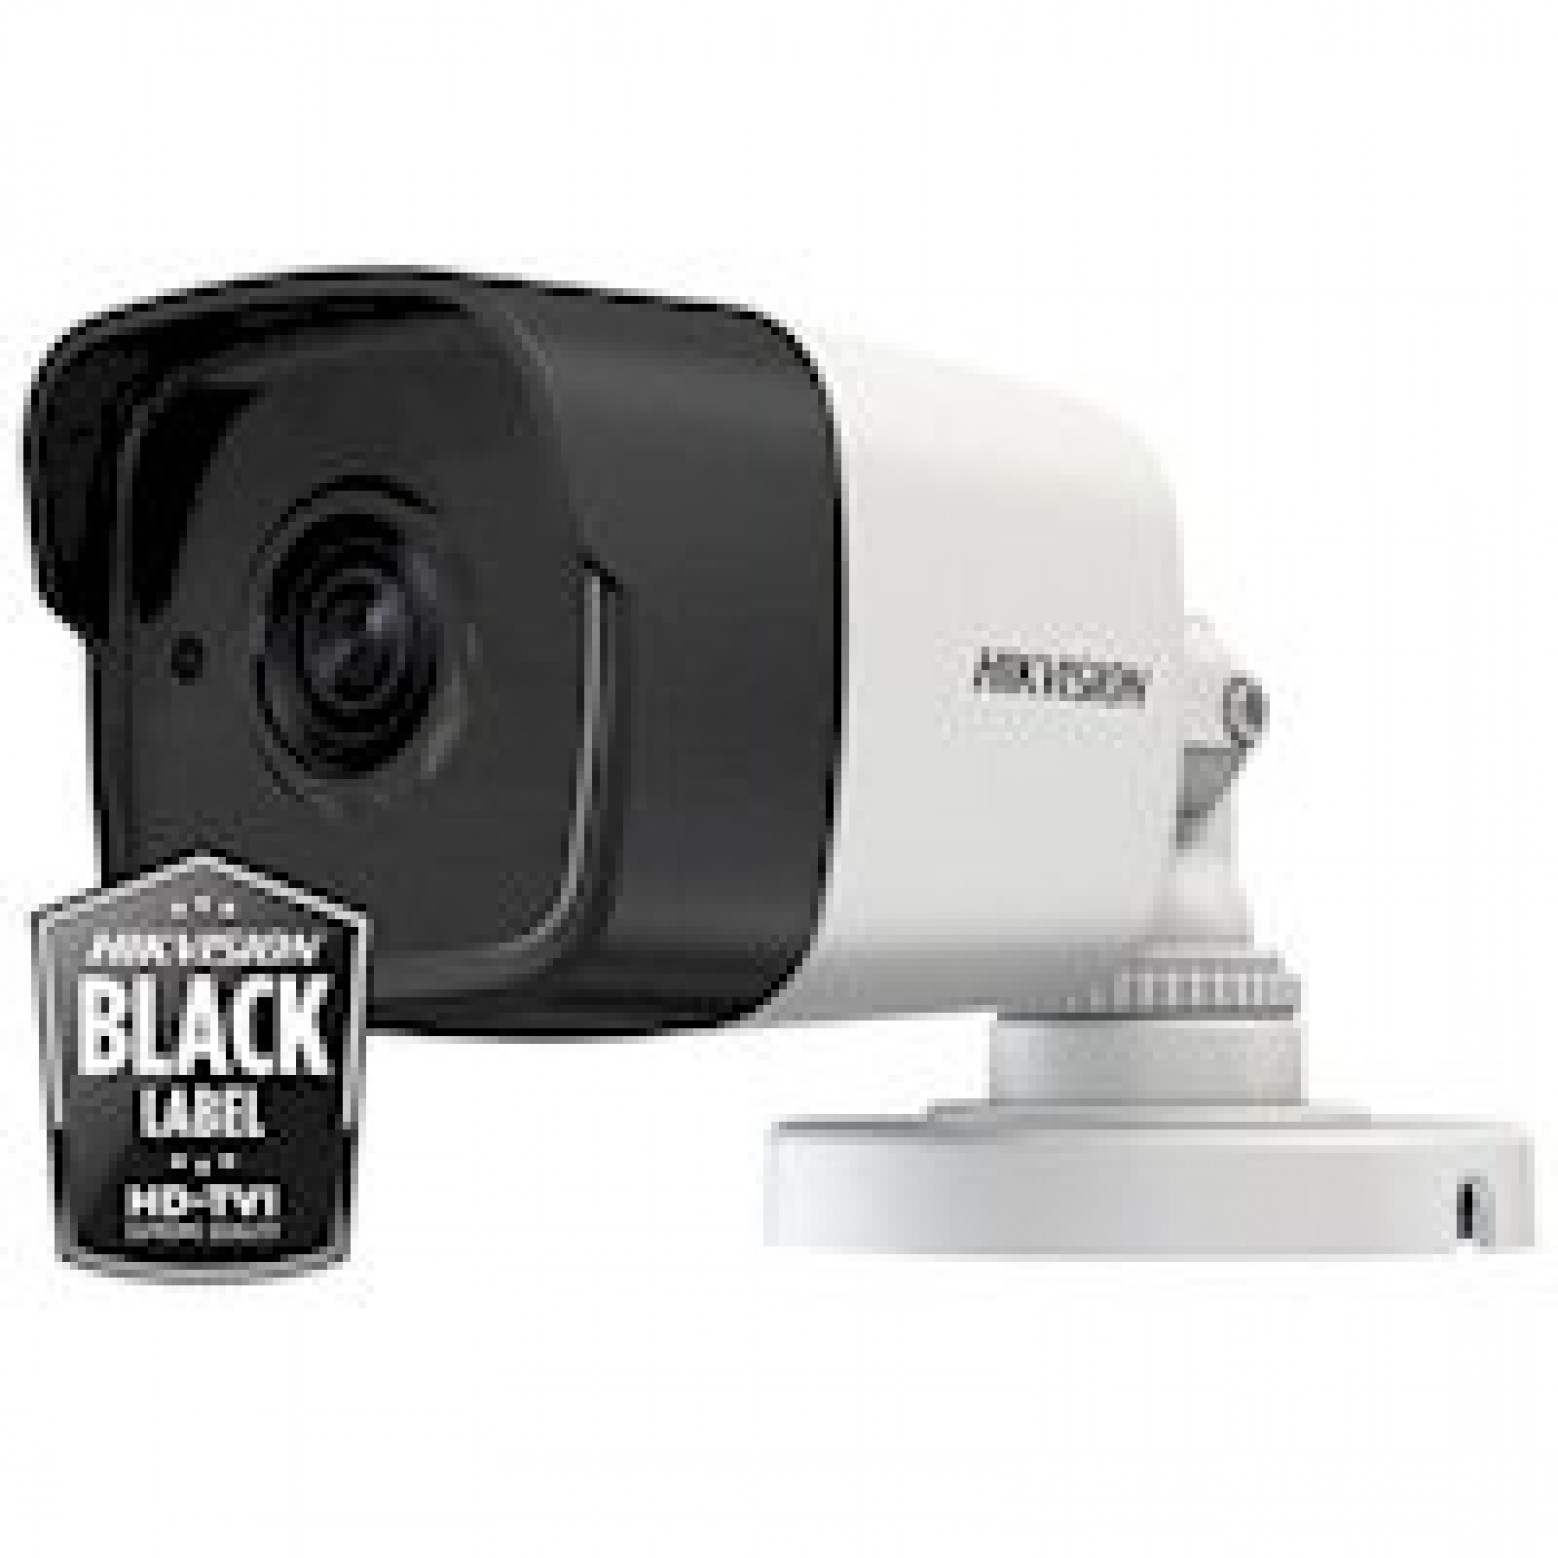 Hikvision DS-2CE16F7T-IT 3MP Turbo bullet cameta 3.6mm, 20M Exir